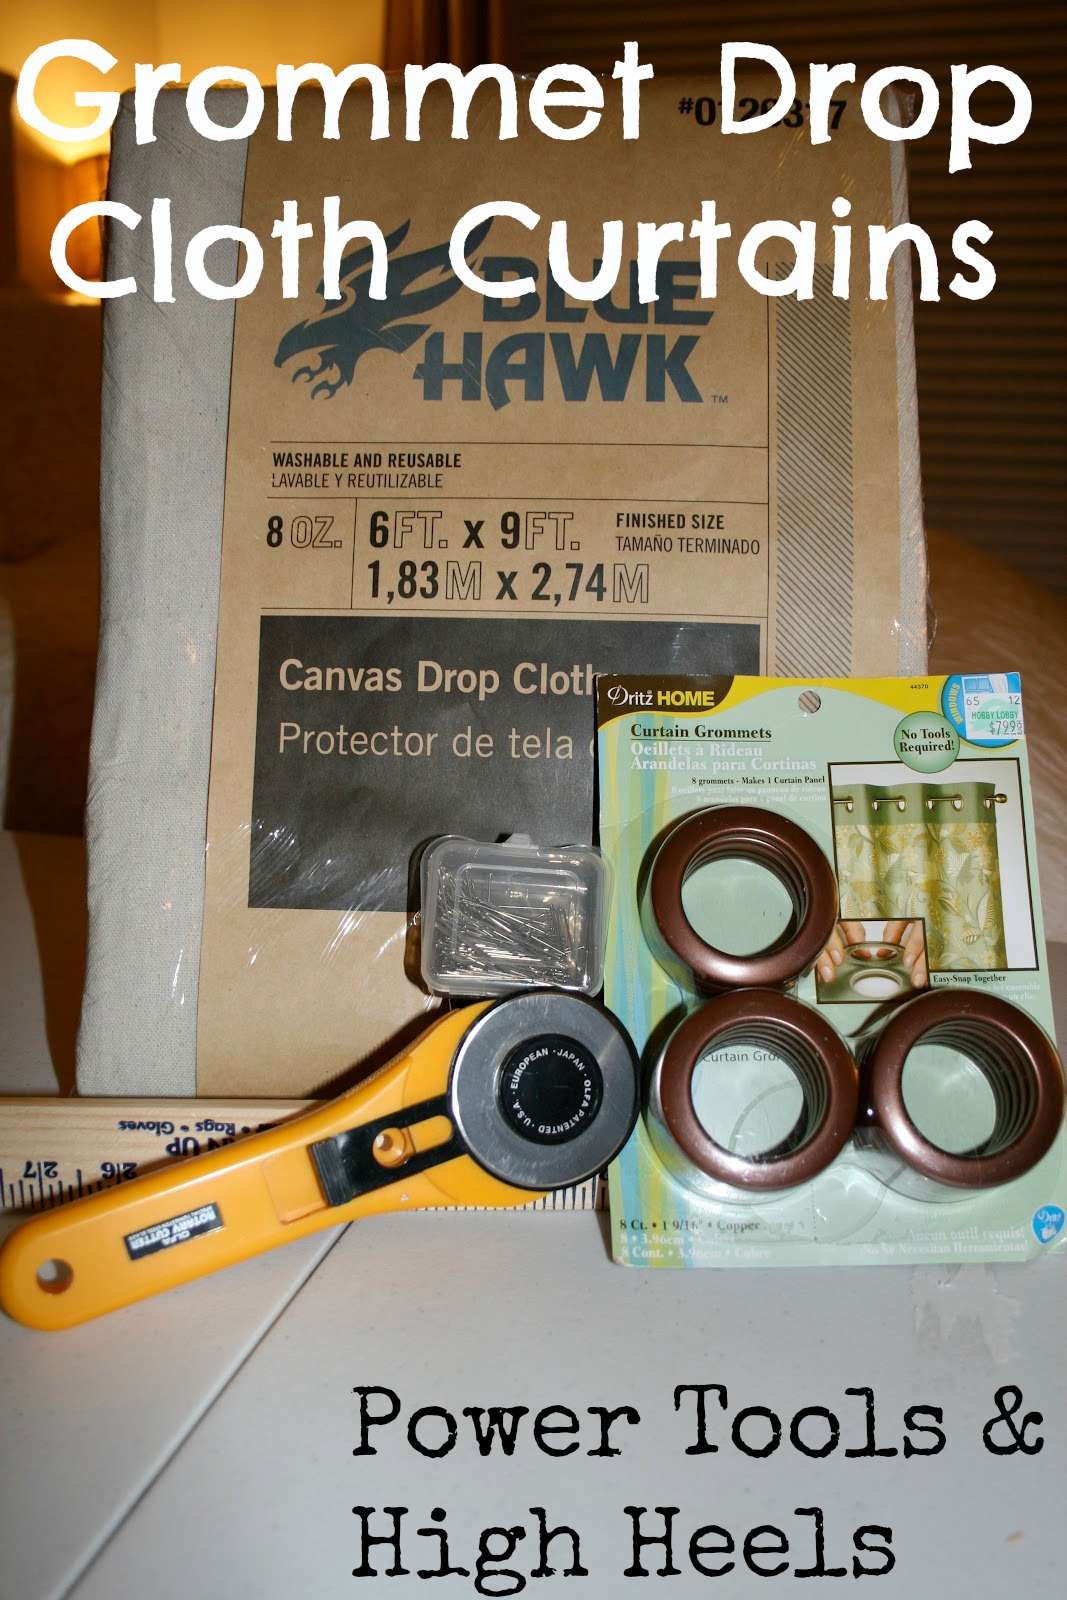 Making curtains with grommets - Drop Cloth Curtains With Grommets